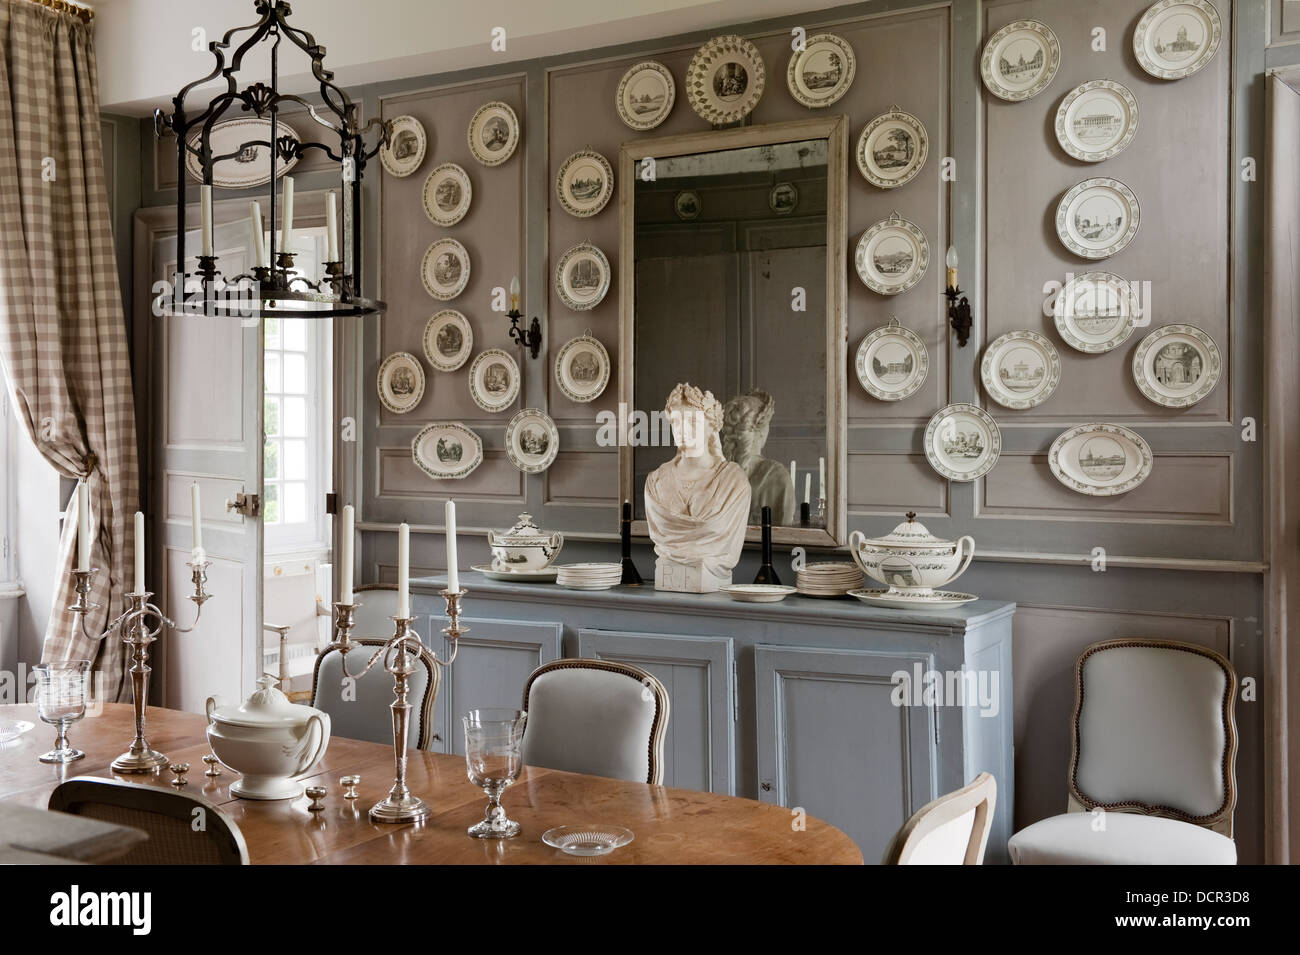 French Antique Chairs And Table In Elegant Dining Room With Wood Wall  Paneling And Decorative China Plates